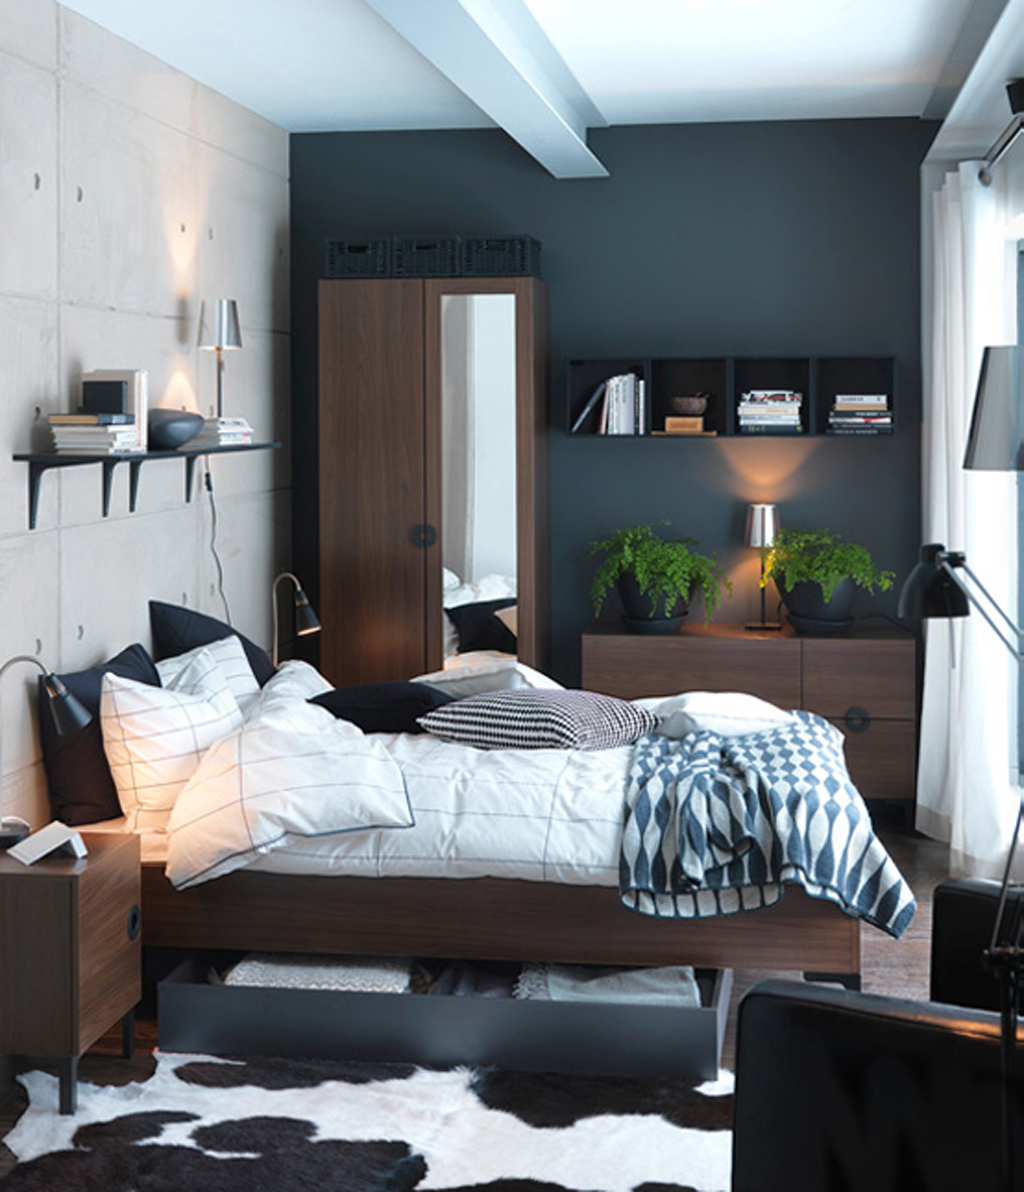 Interior Design Ideas Small Room: Bring The House Down With These Decorating Ideas